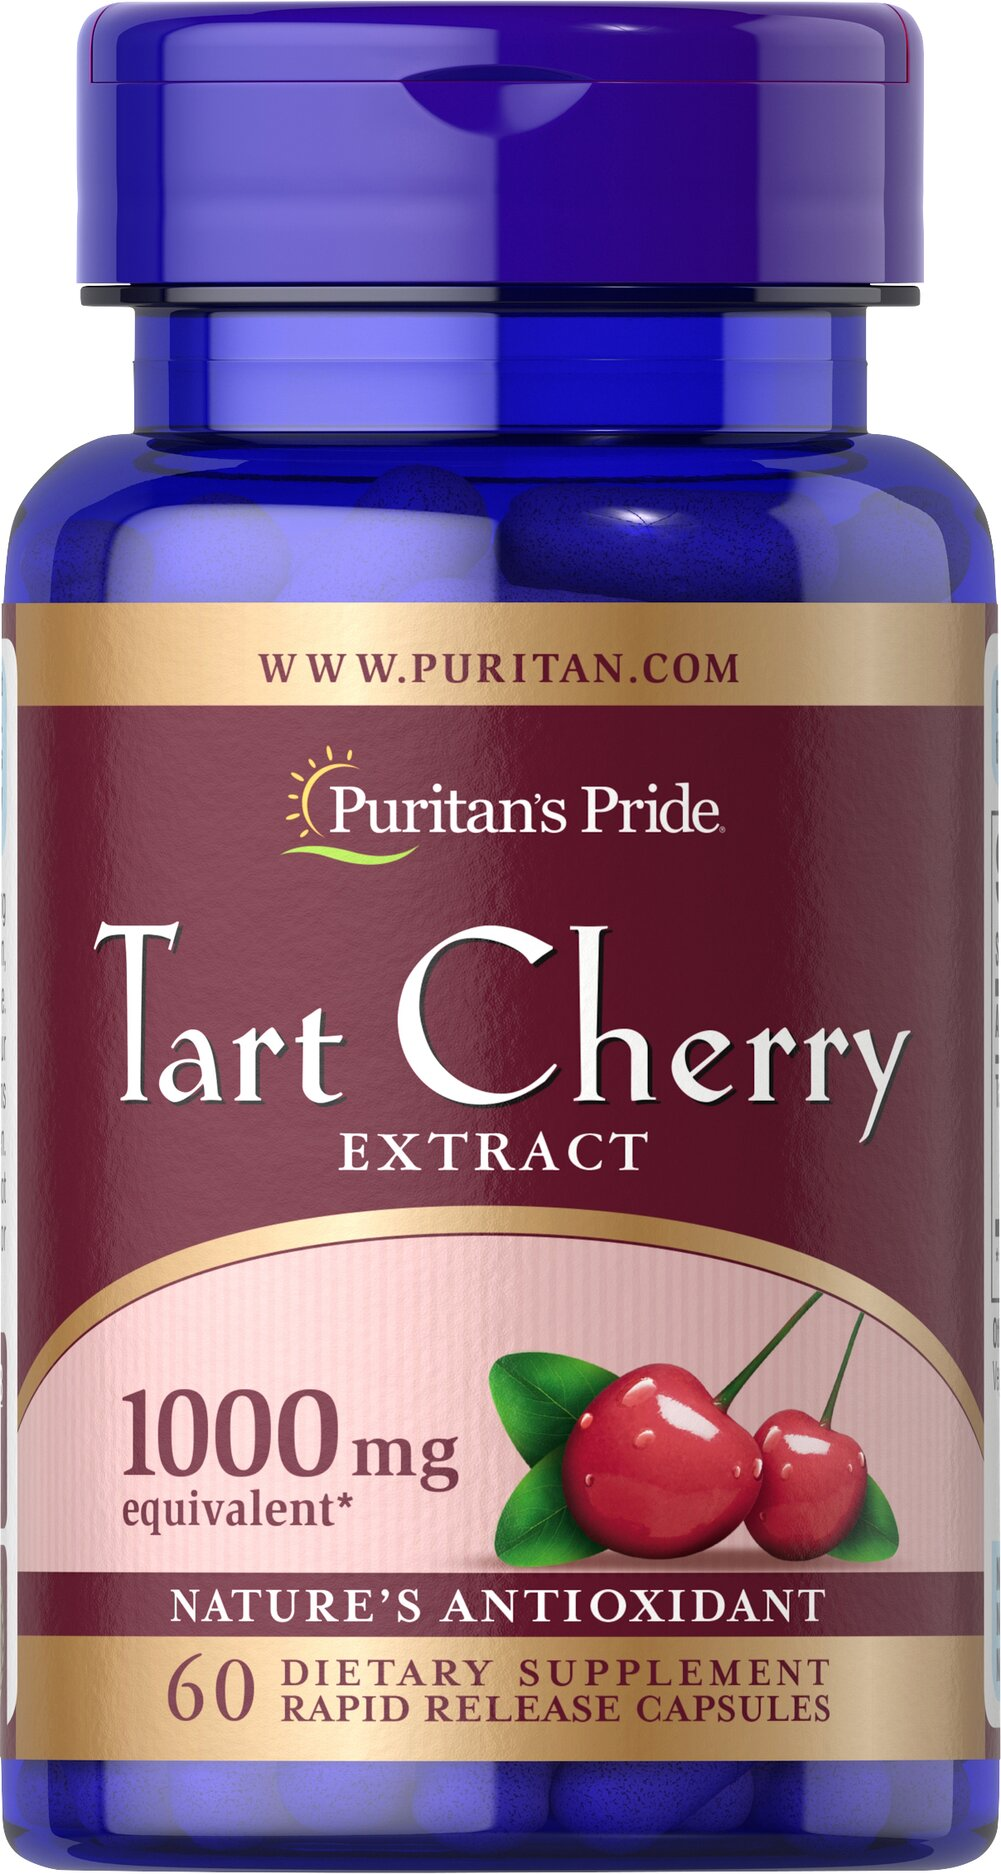 Tart Cherry Extract 1000 mg  60 Capsules 1000 mg $18.99